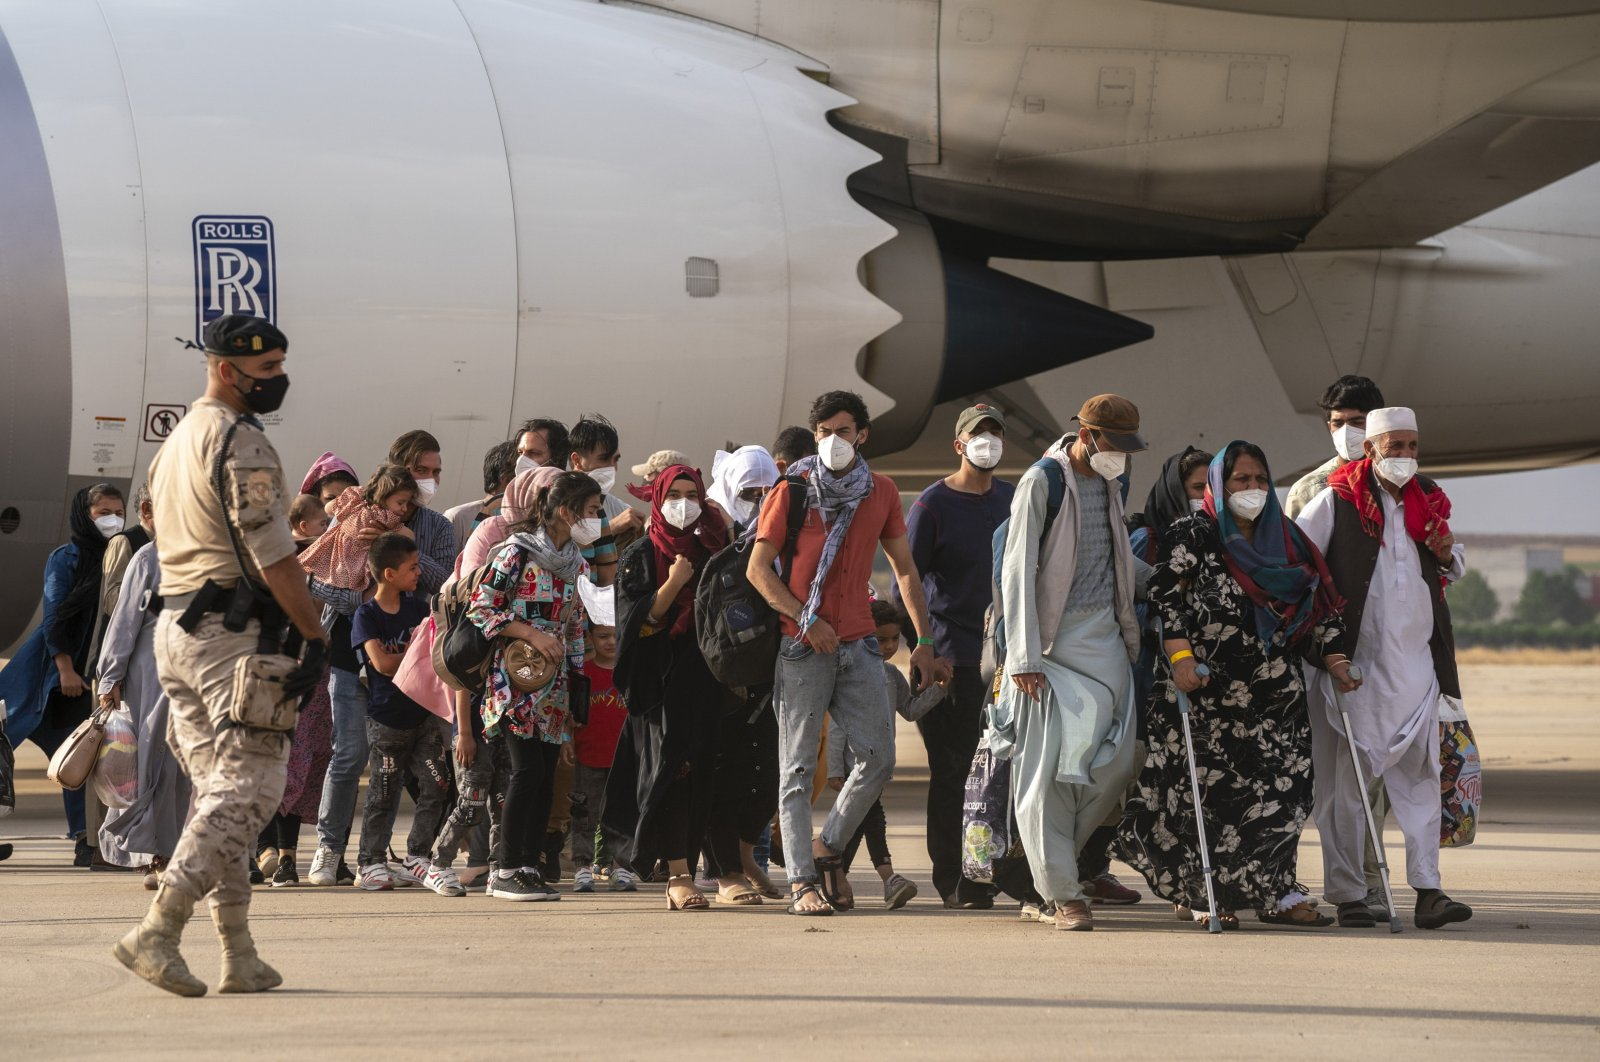 Afghan people pass a Spanish soldier after arriving on a plane at the Torrejon military base as part of the evacuation process from Afghanistan, Madrid, Spain, Aug. 23, 2021. (AP Photo)